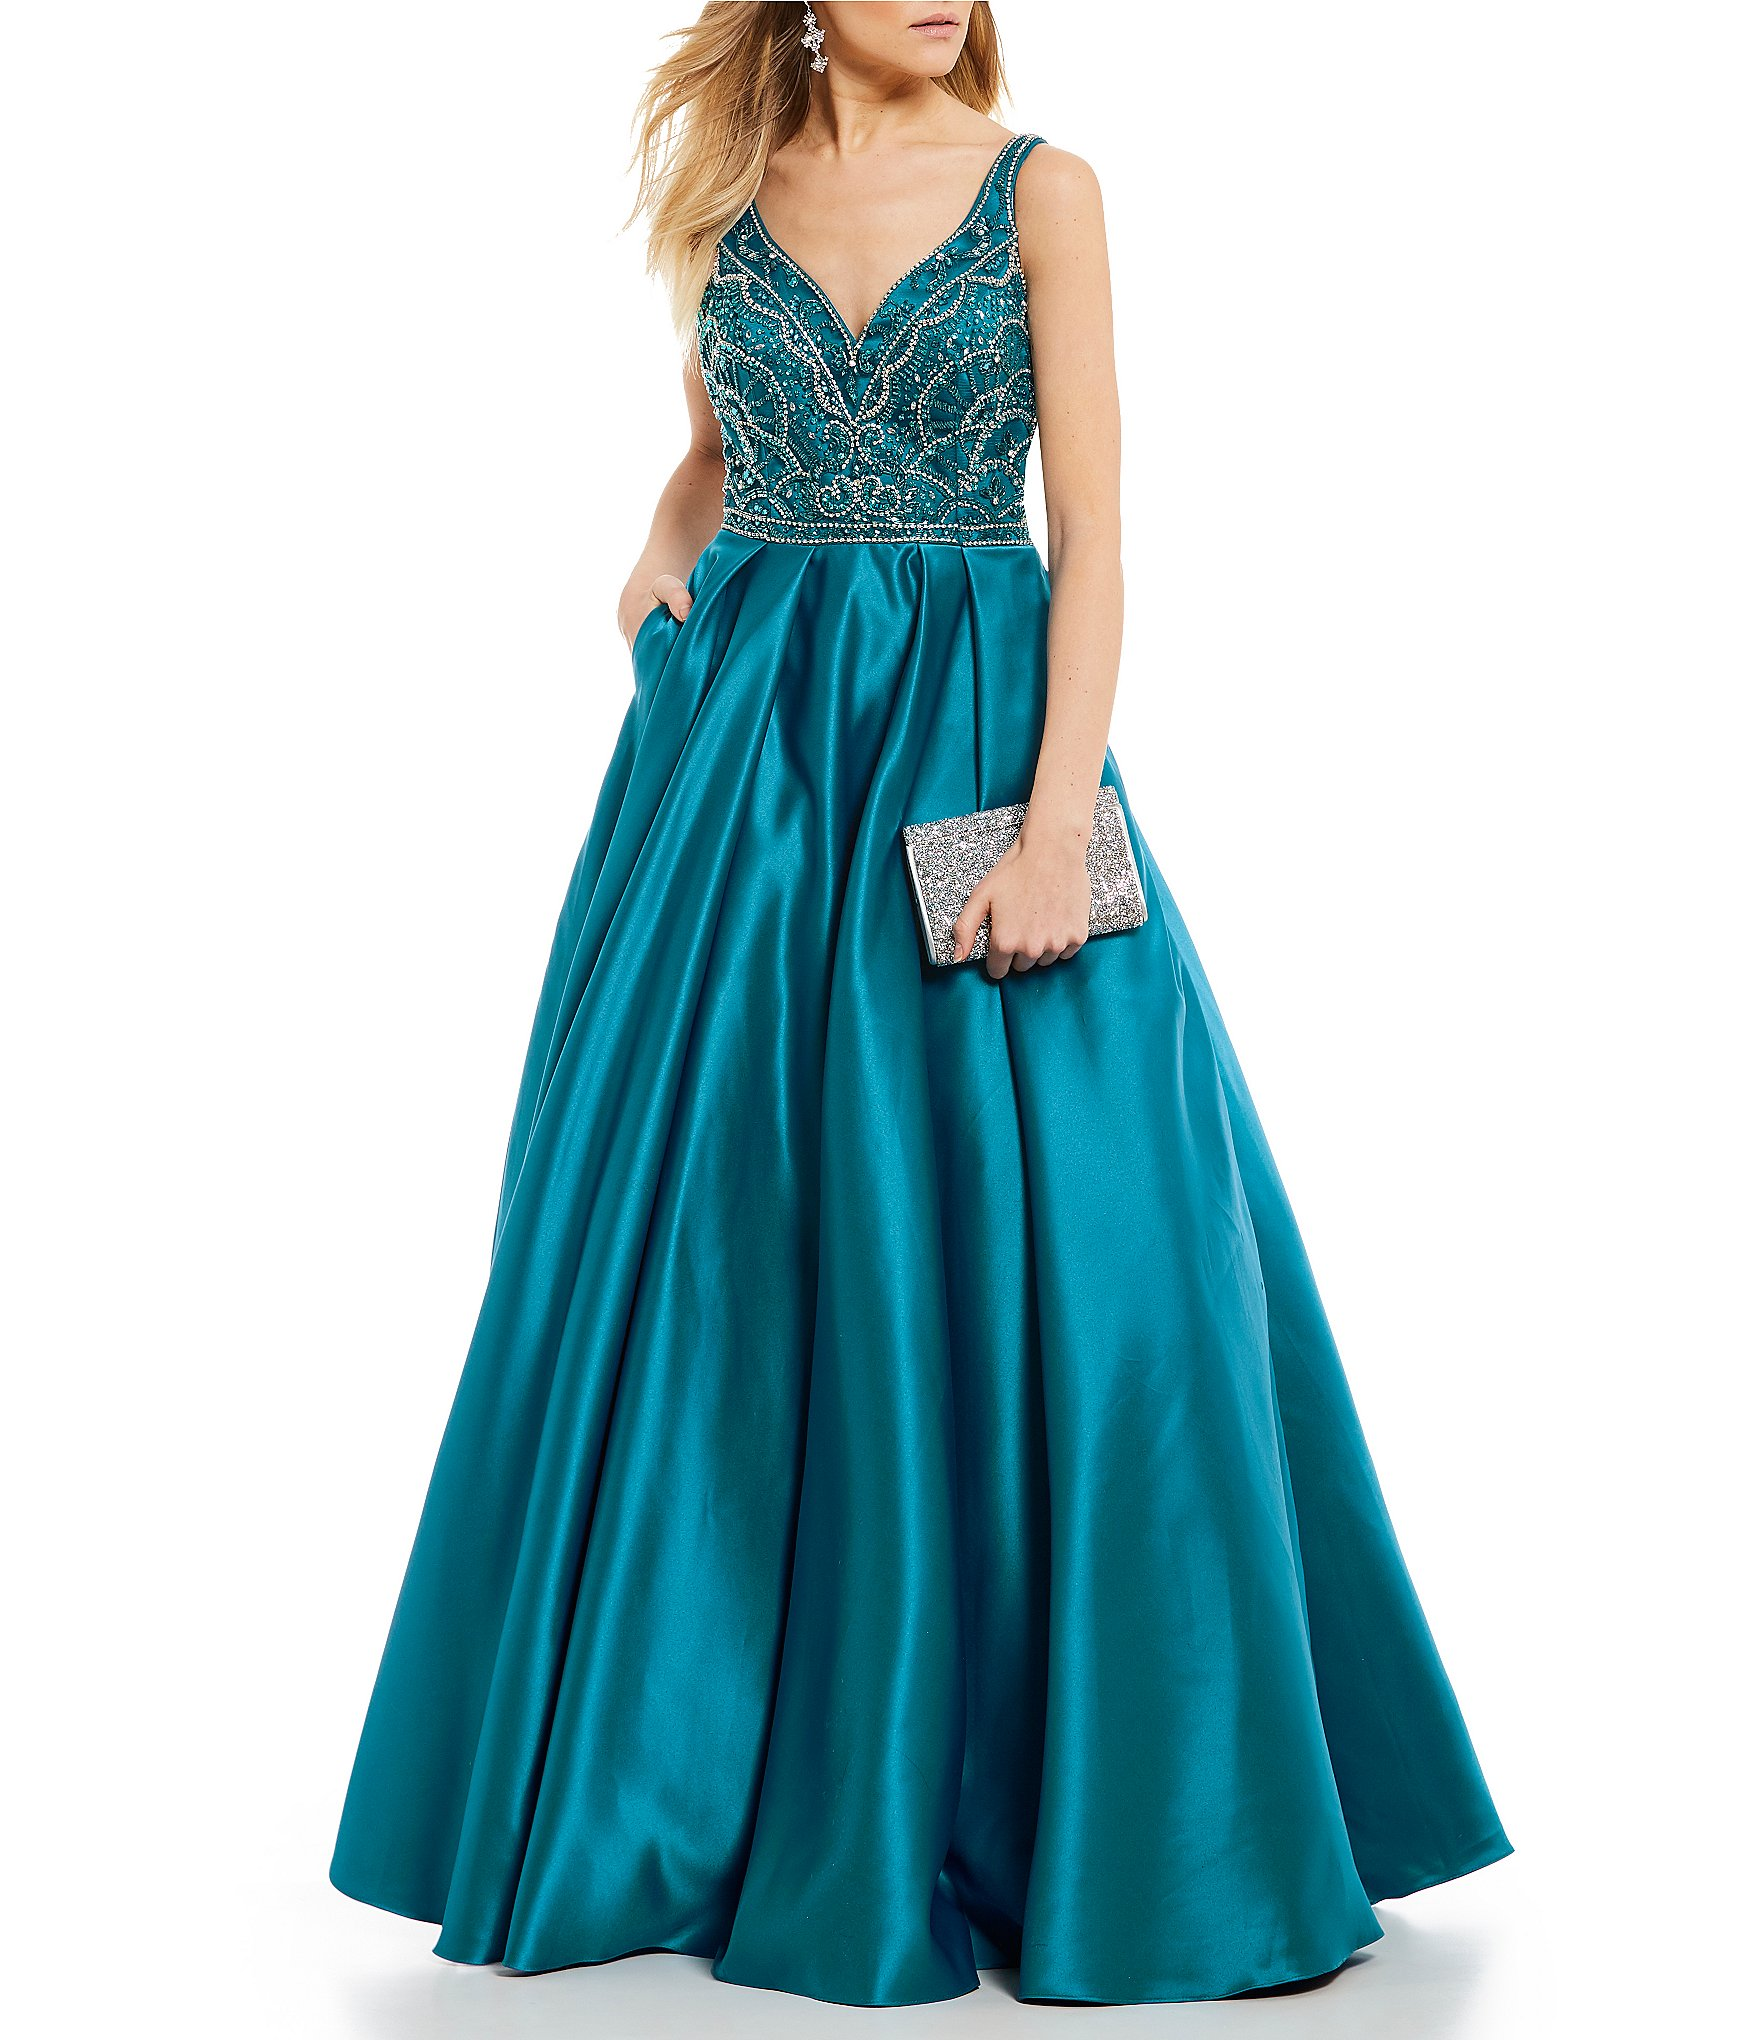 solid collection: Juniors\' Dresses | Dillards.com